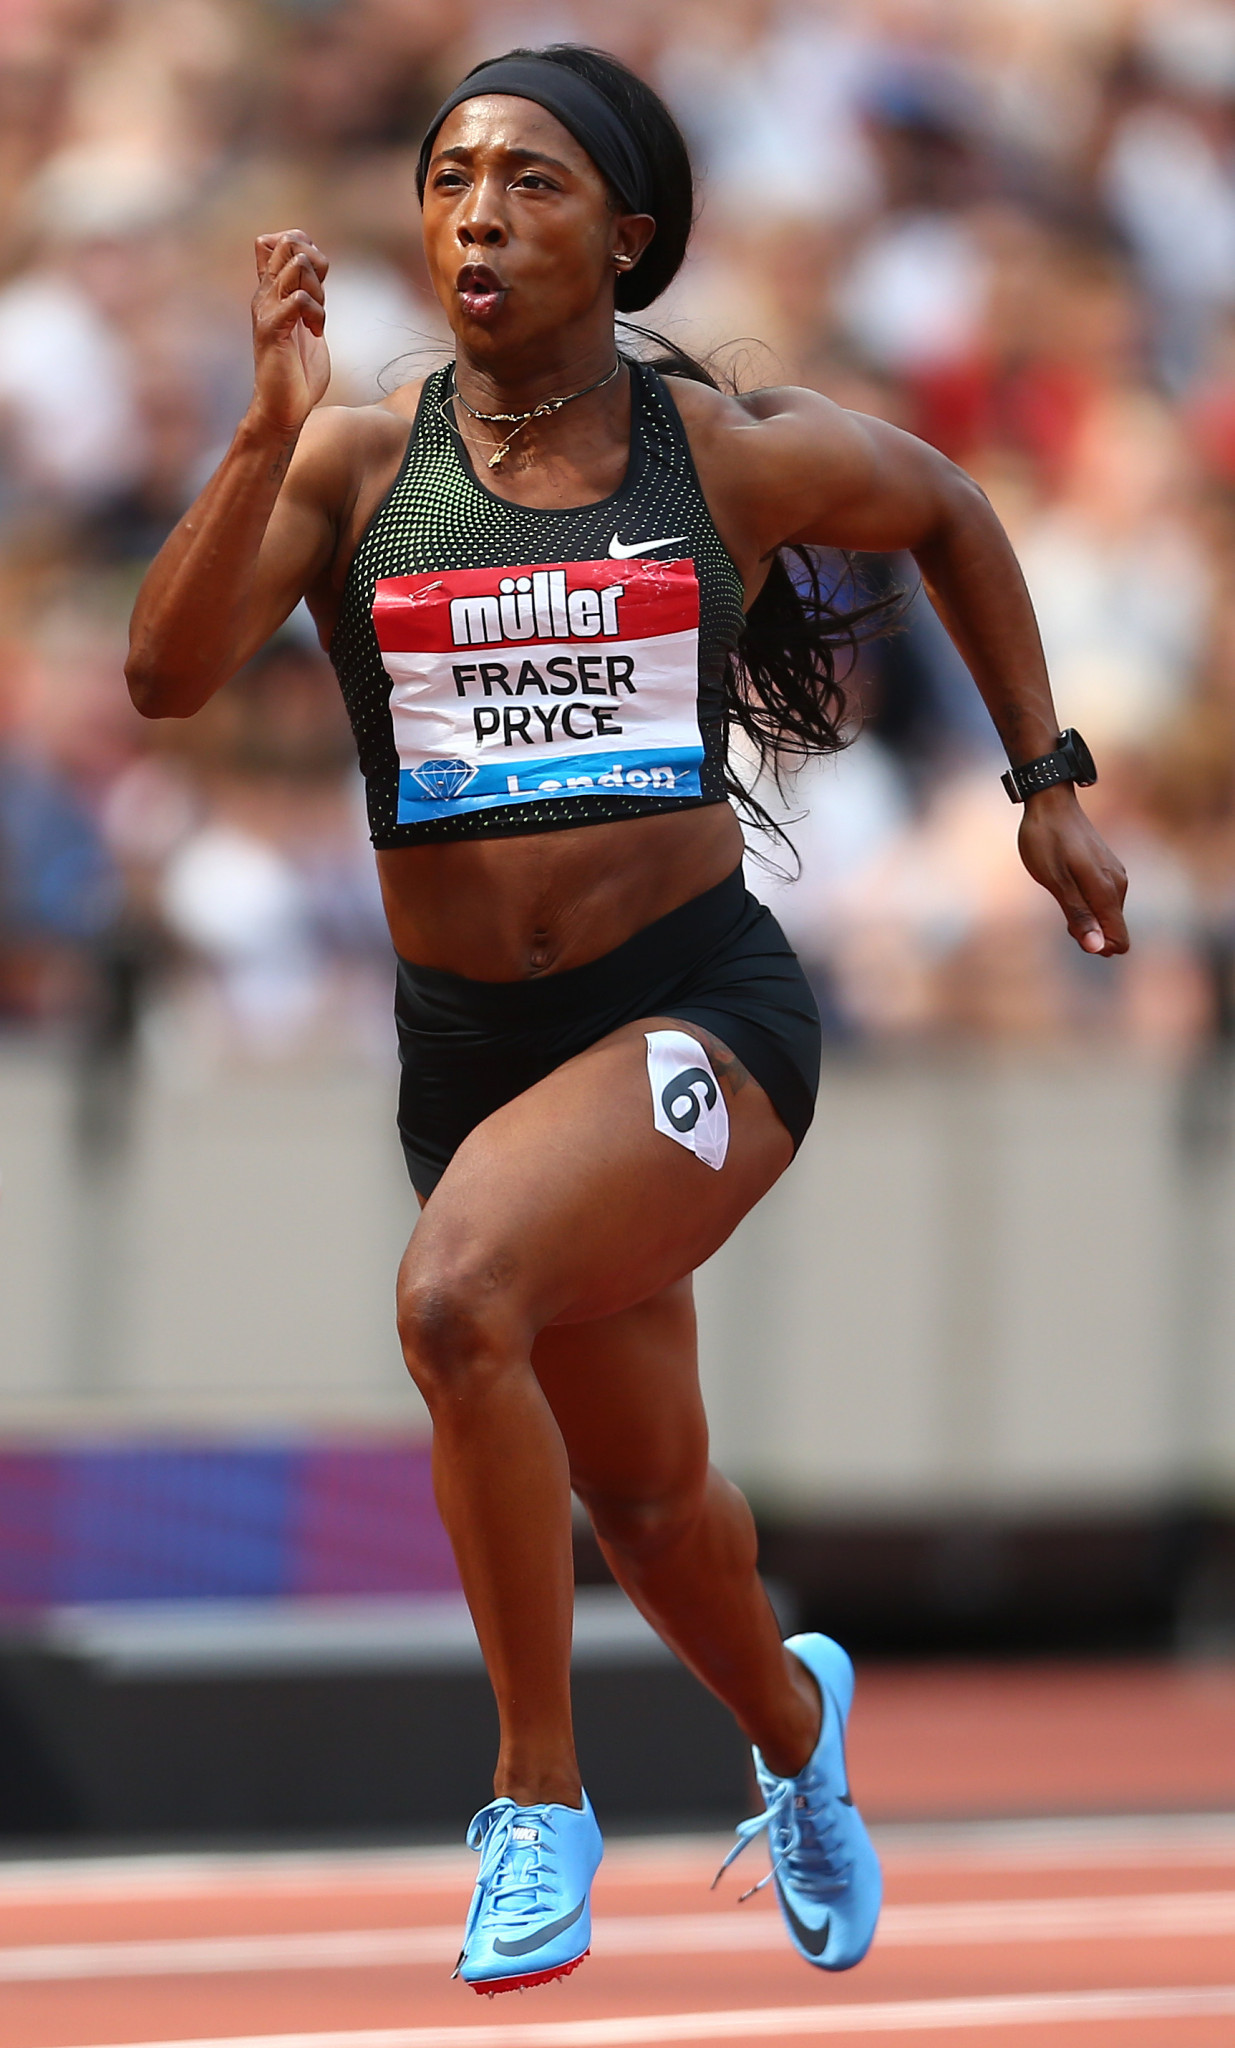 Jamaica's resurgent 2008 and 2012 Olympic 100 metres champion Shelly-Ann Fraser-Pryce will contest a talent-stacked race over that distance in tomorrow's IAAF Diamond League meeting in Stanford, California ©Getty Images